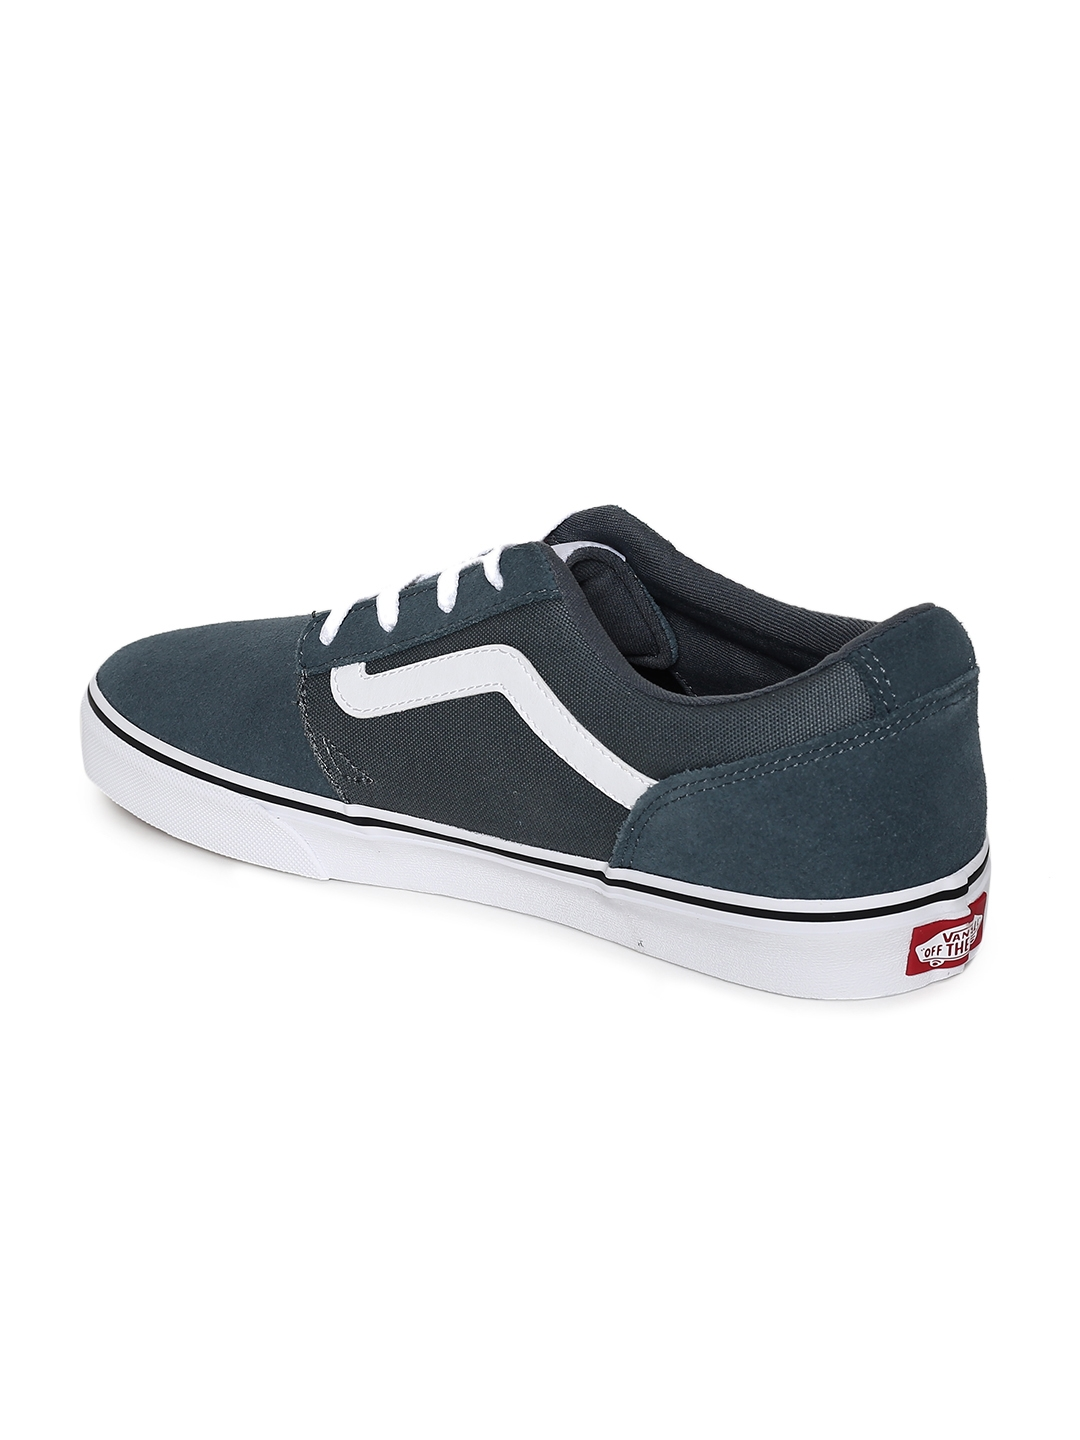 8423cee903b Buy Vans Men Navy Blue Suede Chapman Stripe Sneakers - Casual Shoes ...